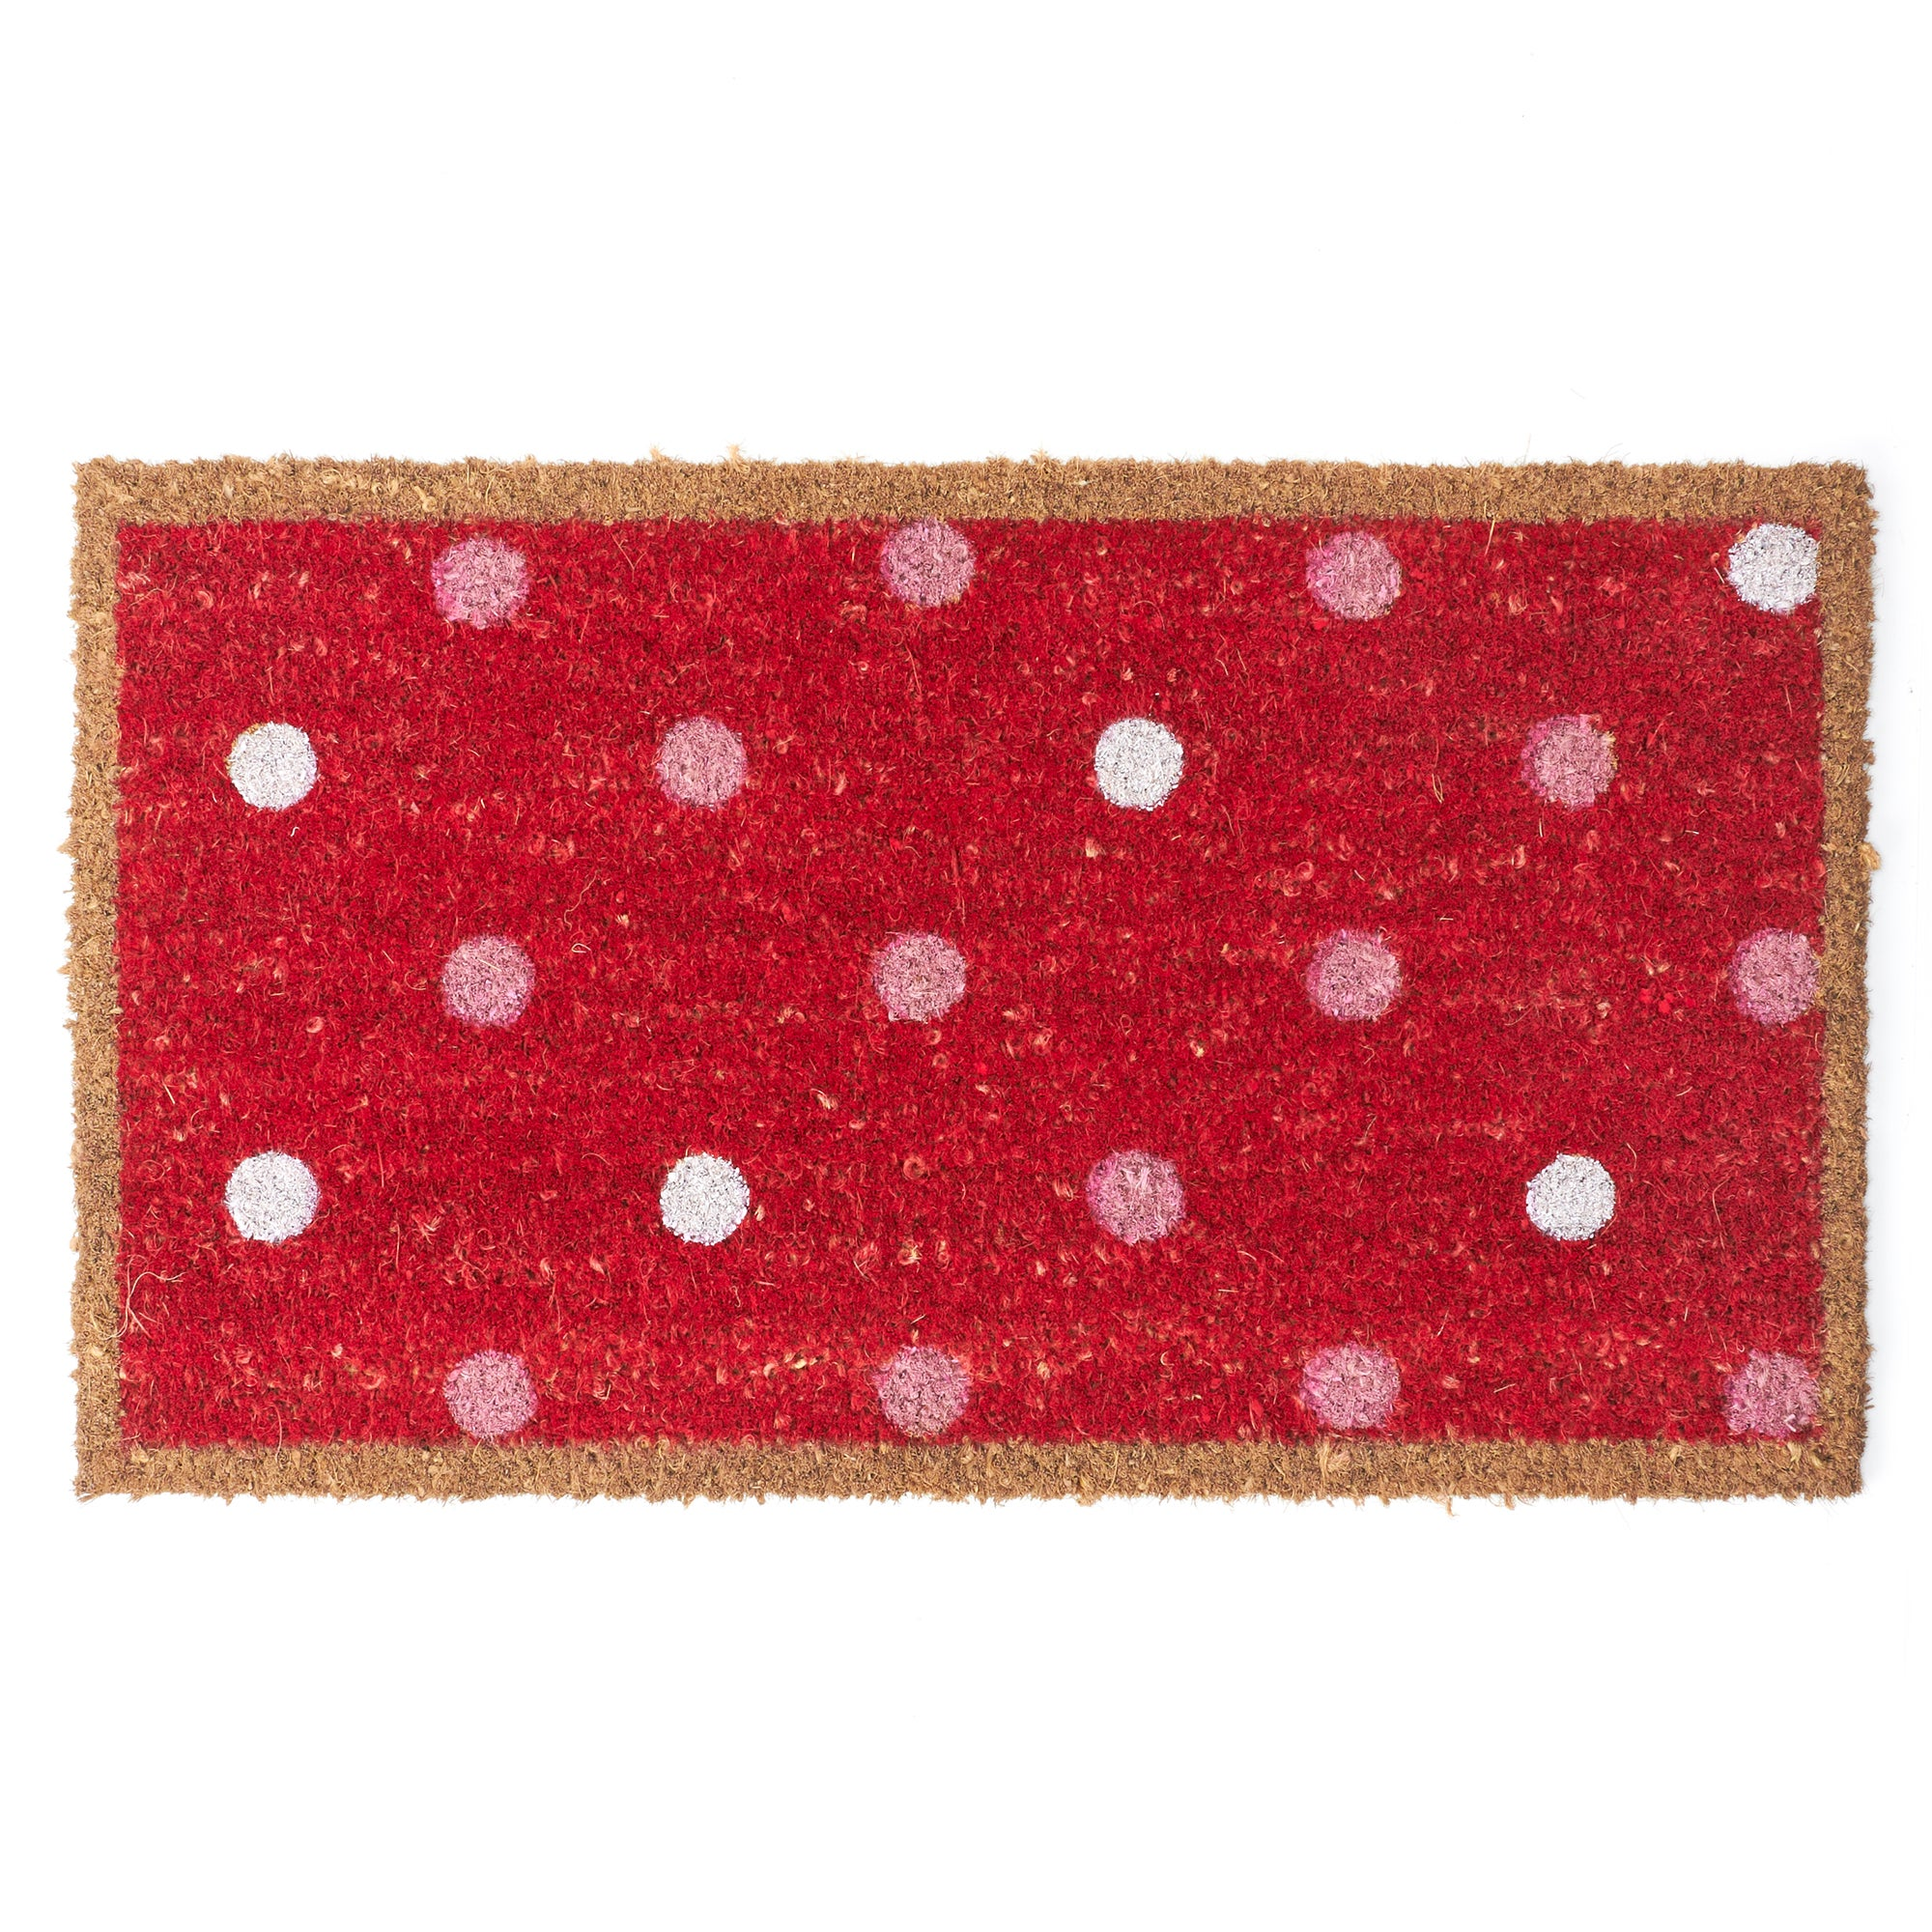 Rose and Ellis Oakley Collection Coir Doormat